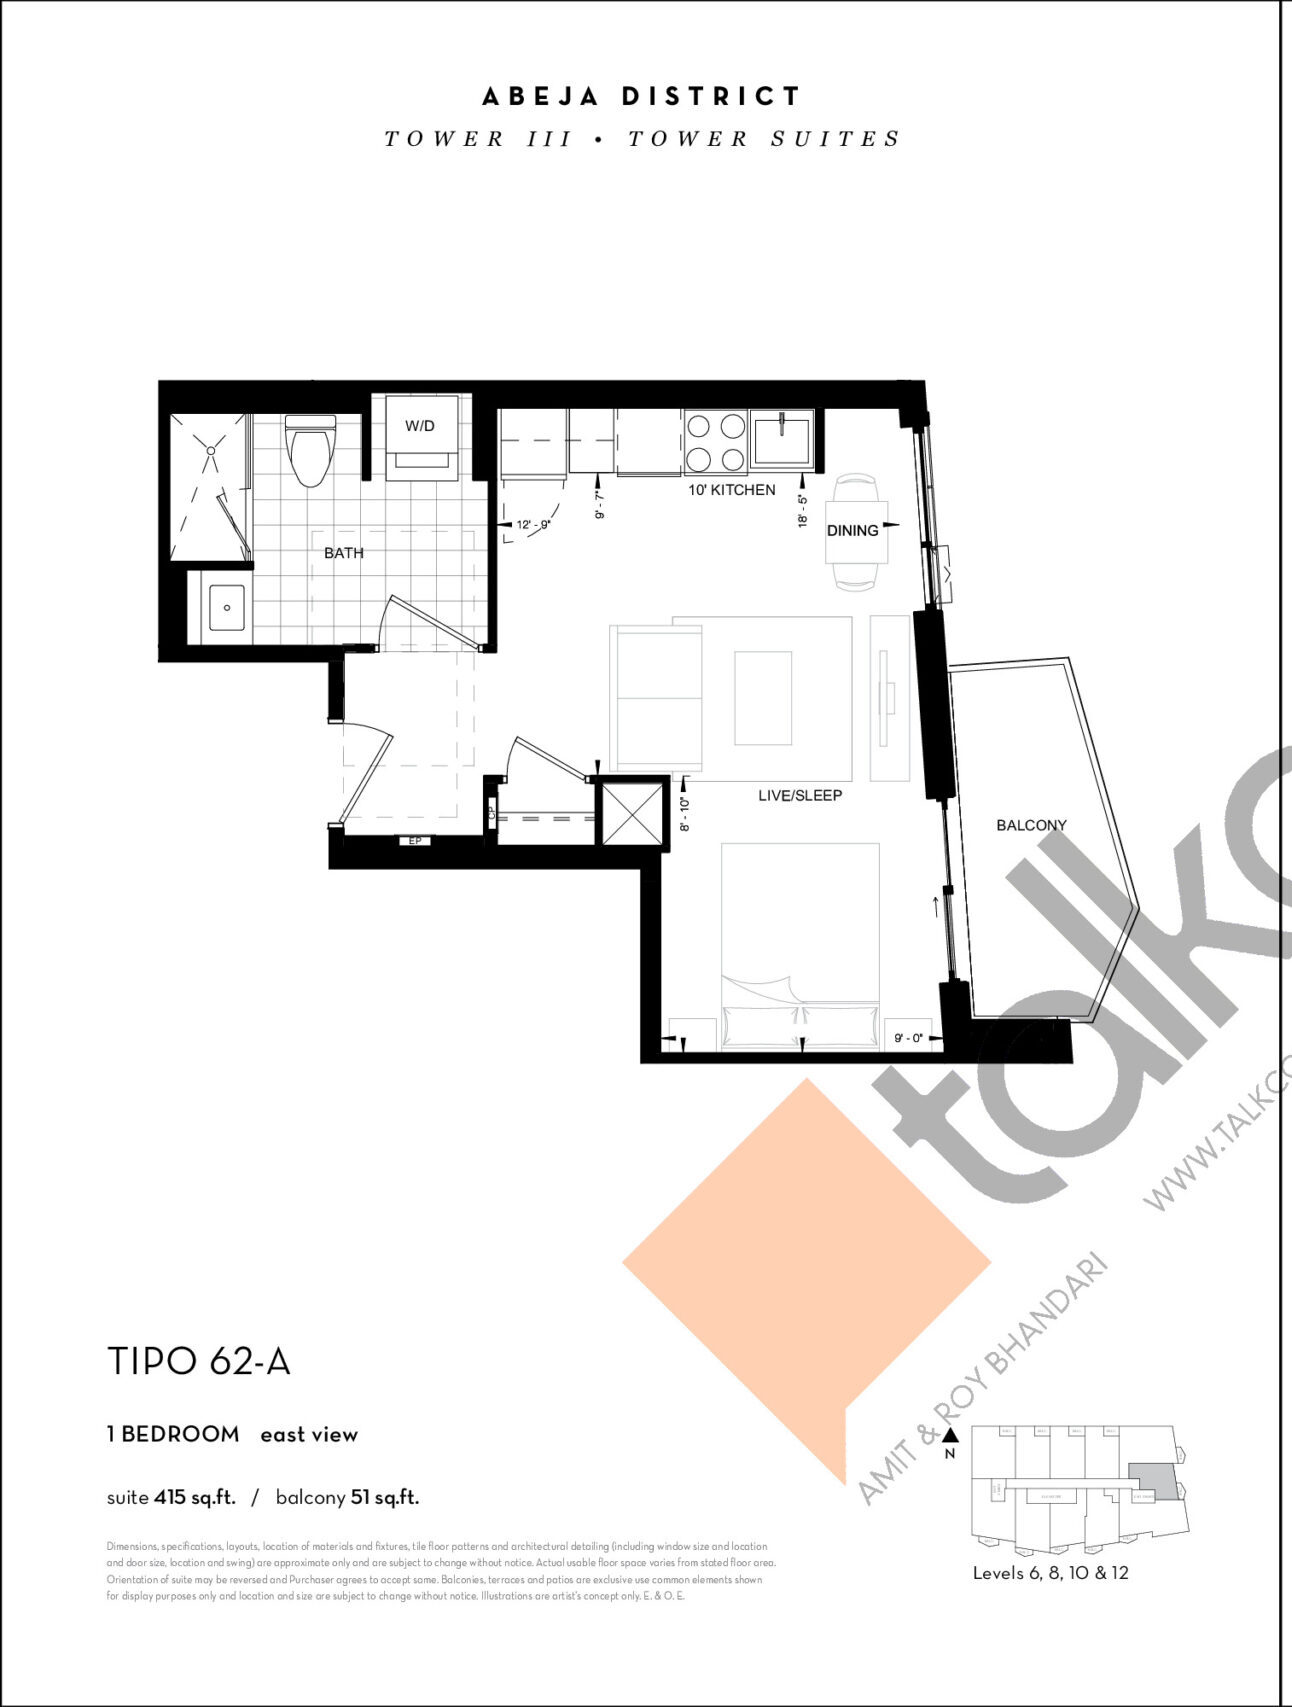 TIPO 62-A Floor Plan at Abeja District Condos Tower 3 - 415 sq.ft